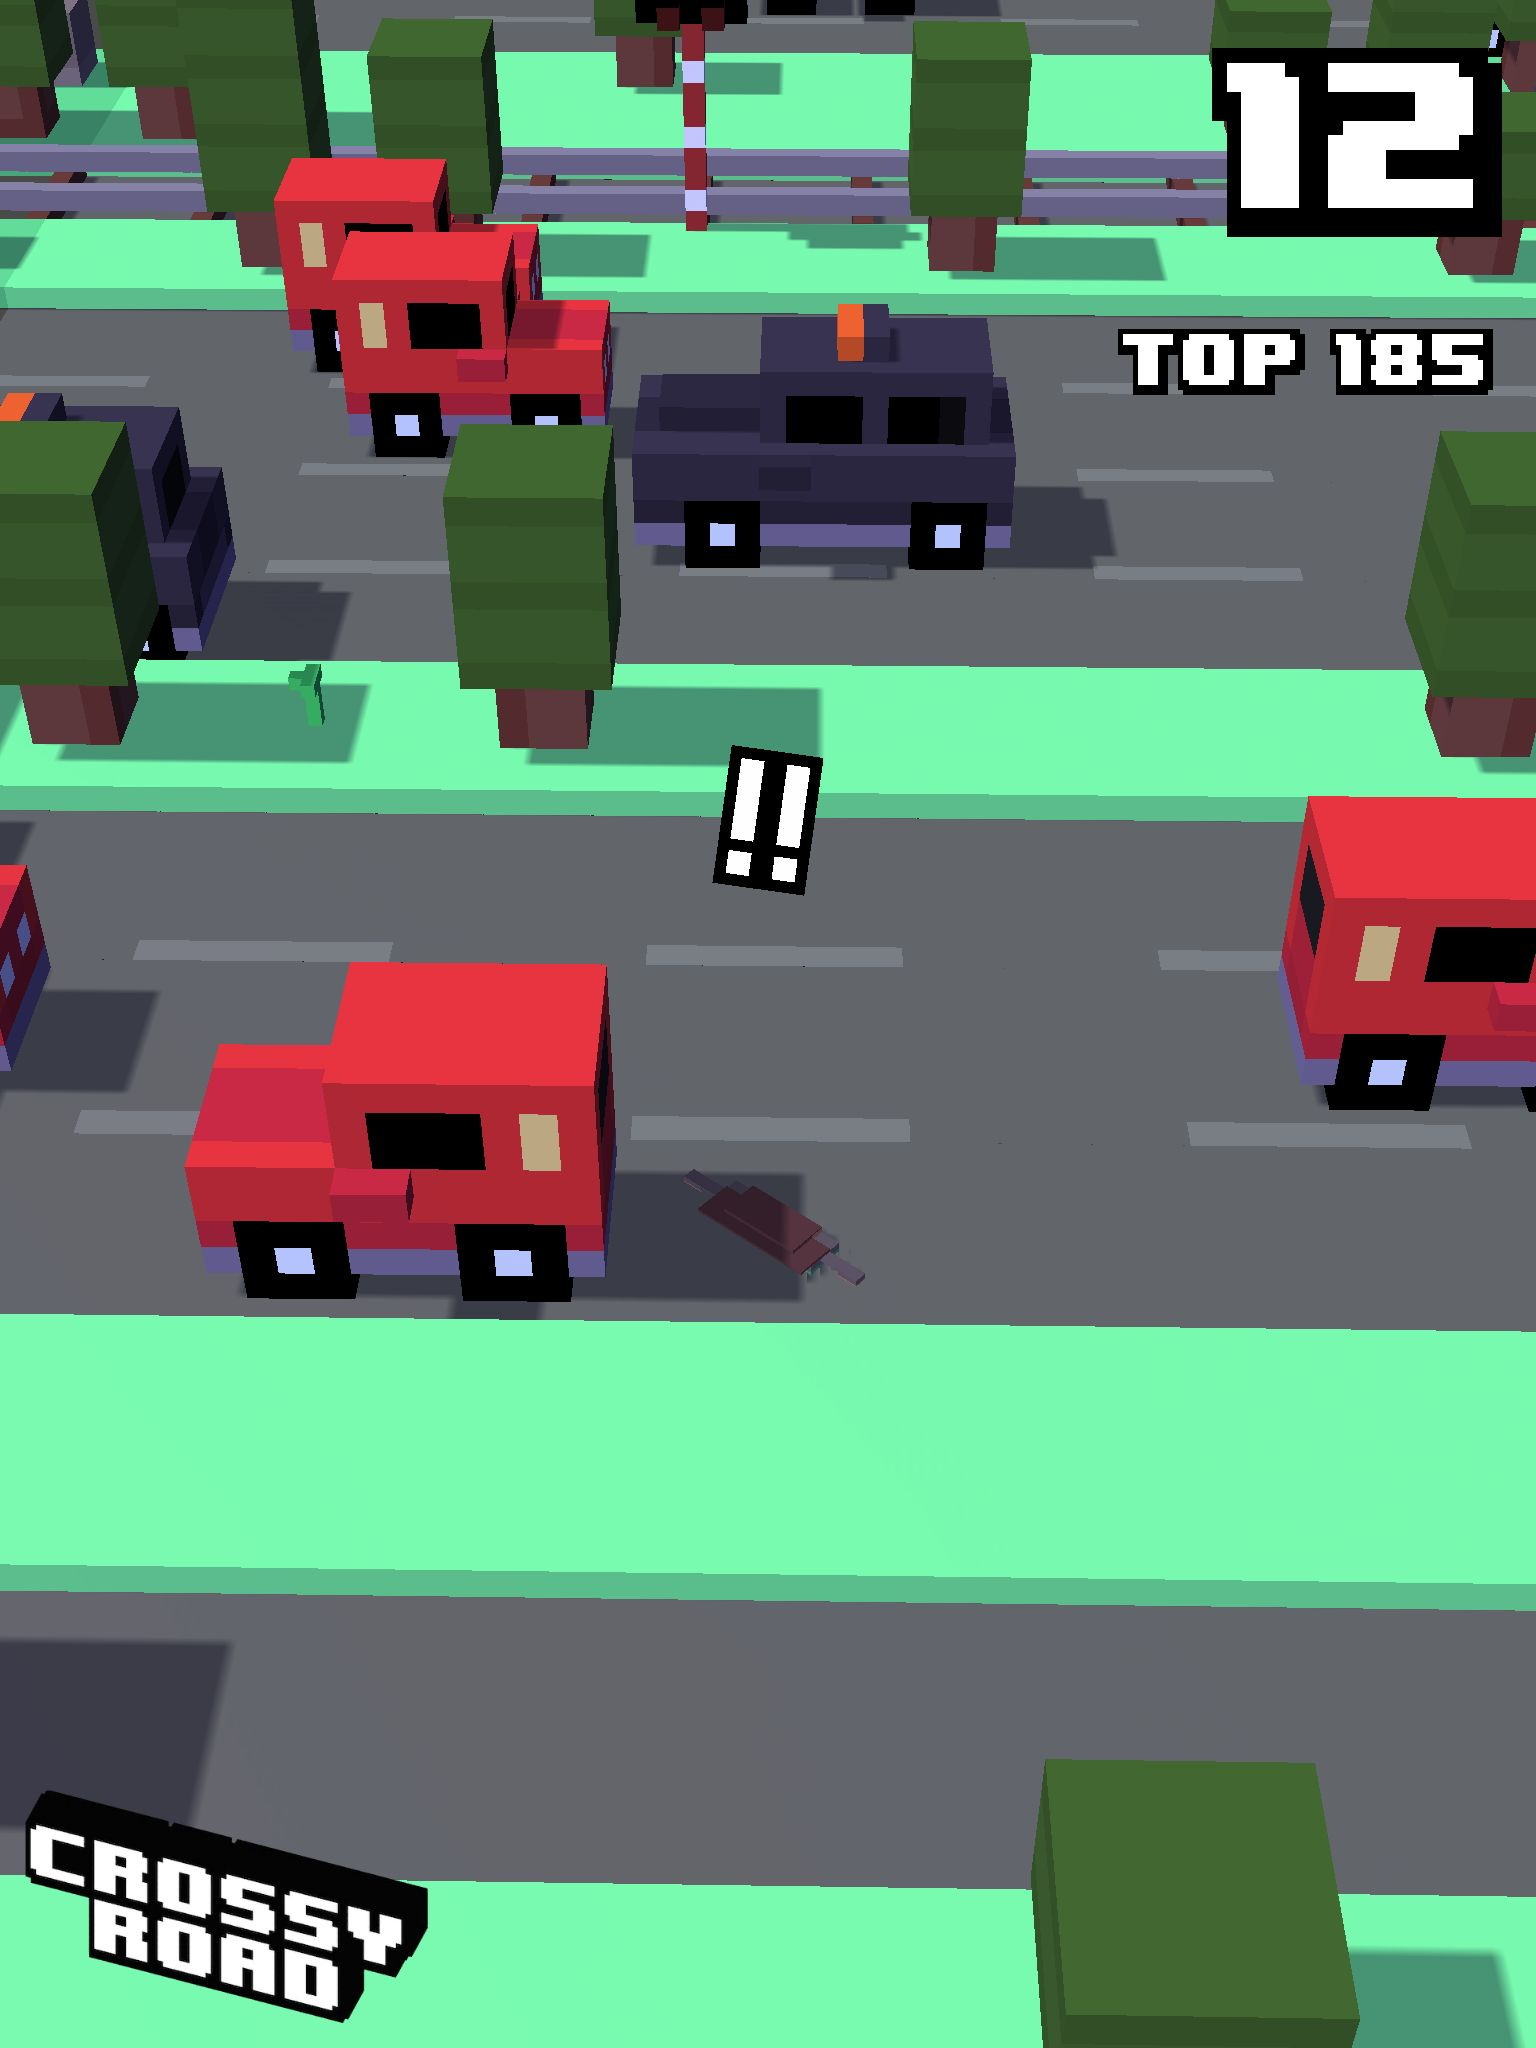 12 on #crossyroad. My top is 185.